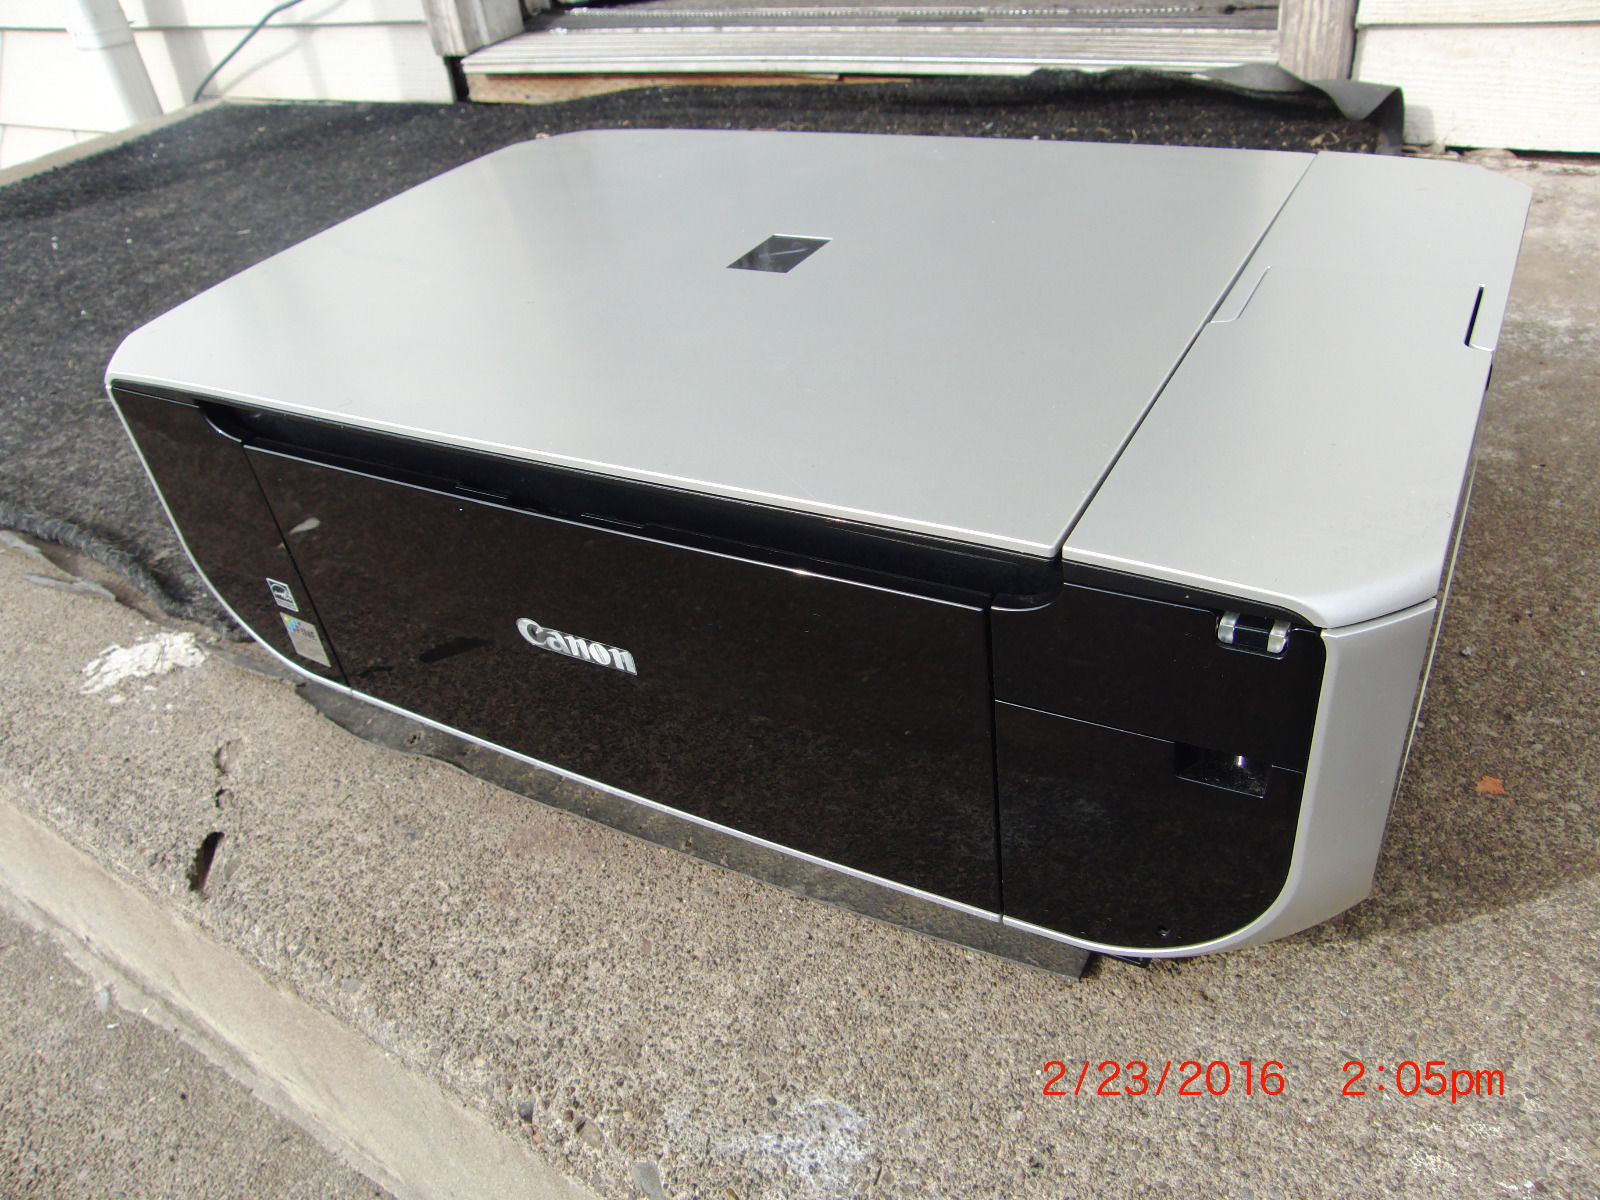 CANON MP470 SERIES PRINTER DESCARGAR DRIVER